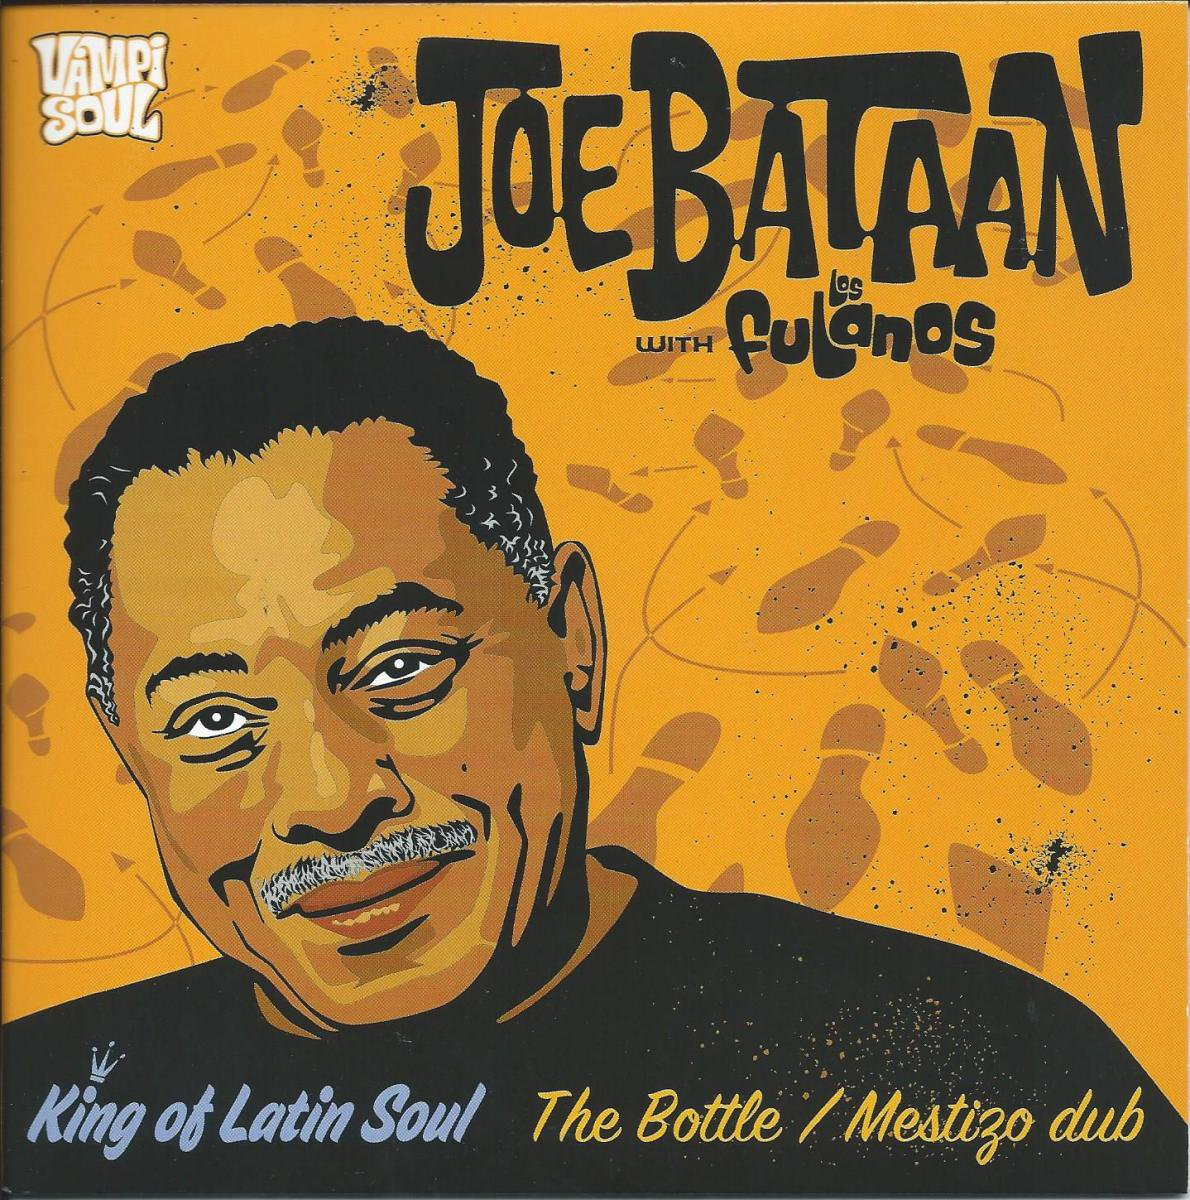 JOE BATAAN & LOS FULANOS / THE BOTTLE / MESTIZO DUB (7